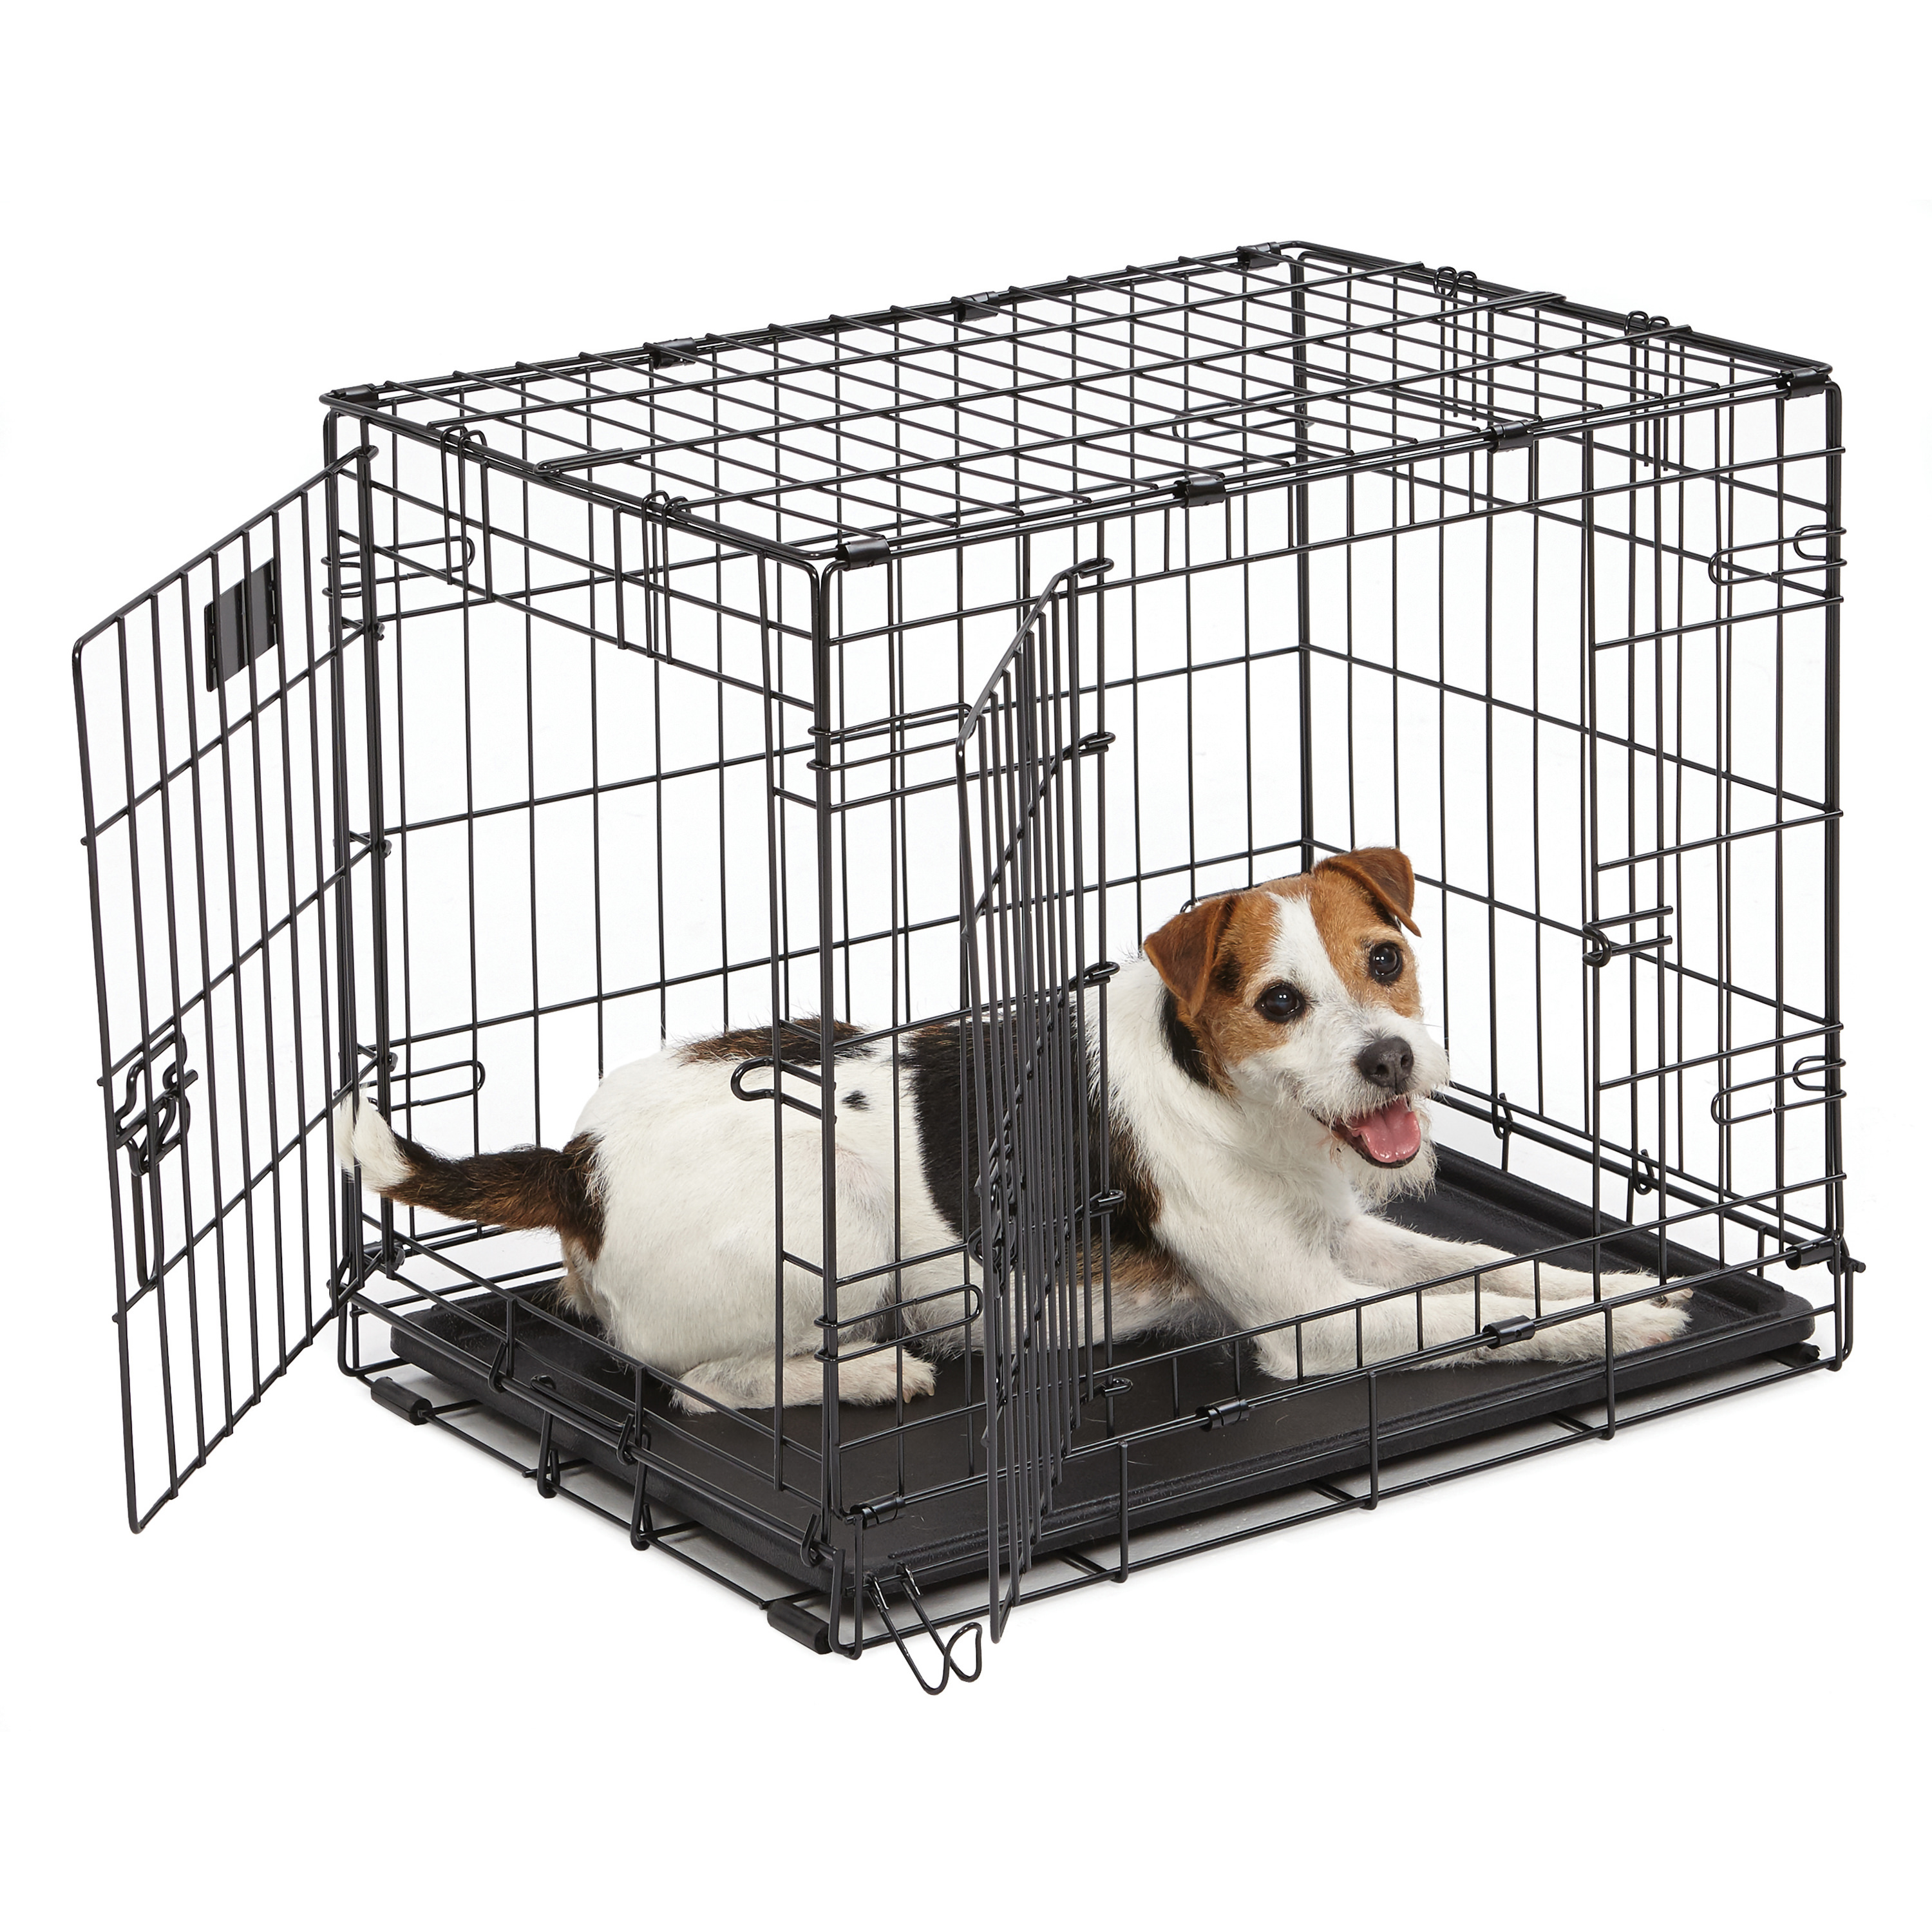 Double Door iCrate Metal Dog Crate, 24-Inch, Black